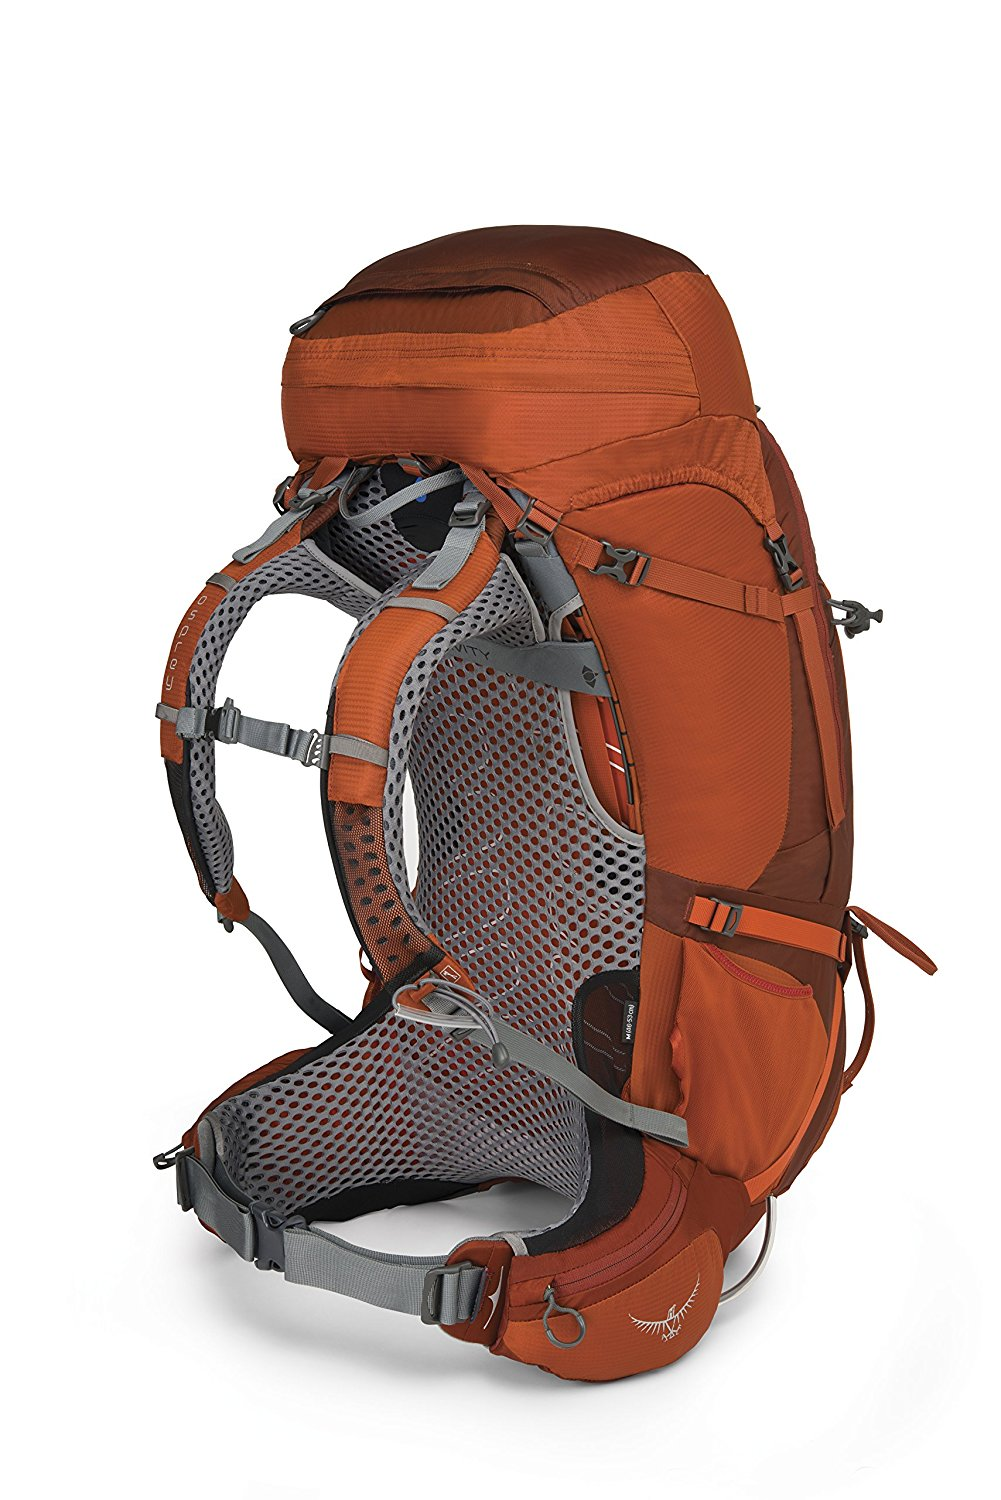 osprey, backpack, backpacking, hiking, camping